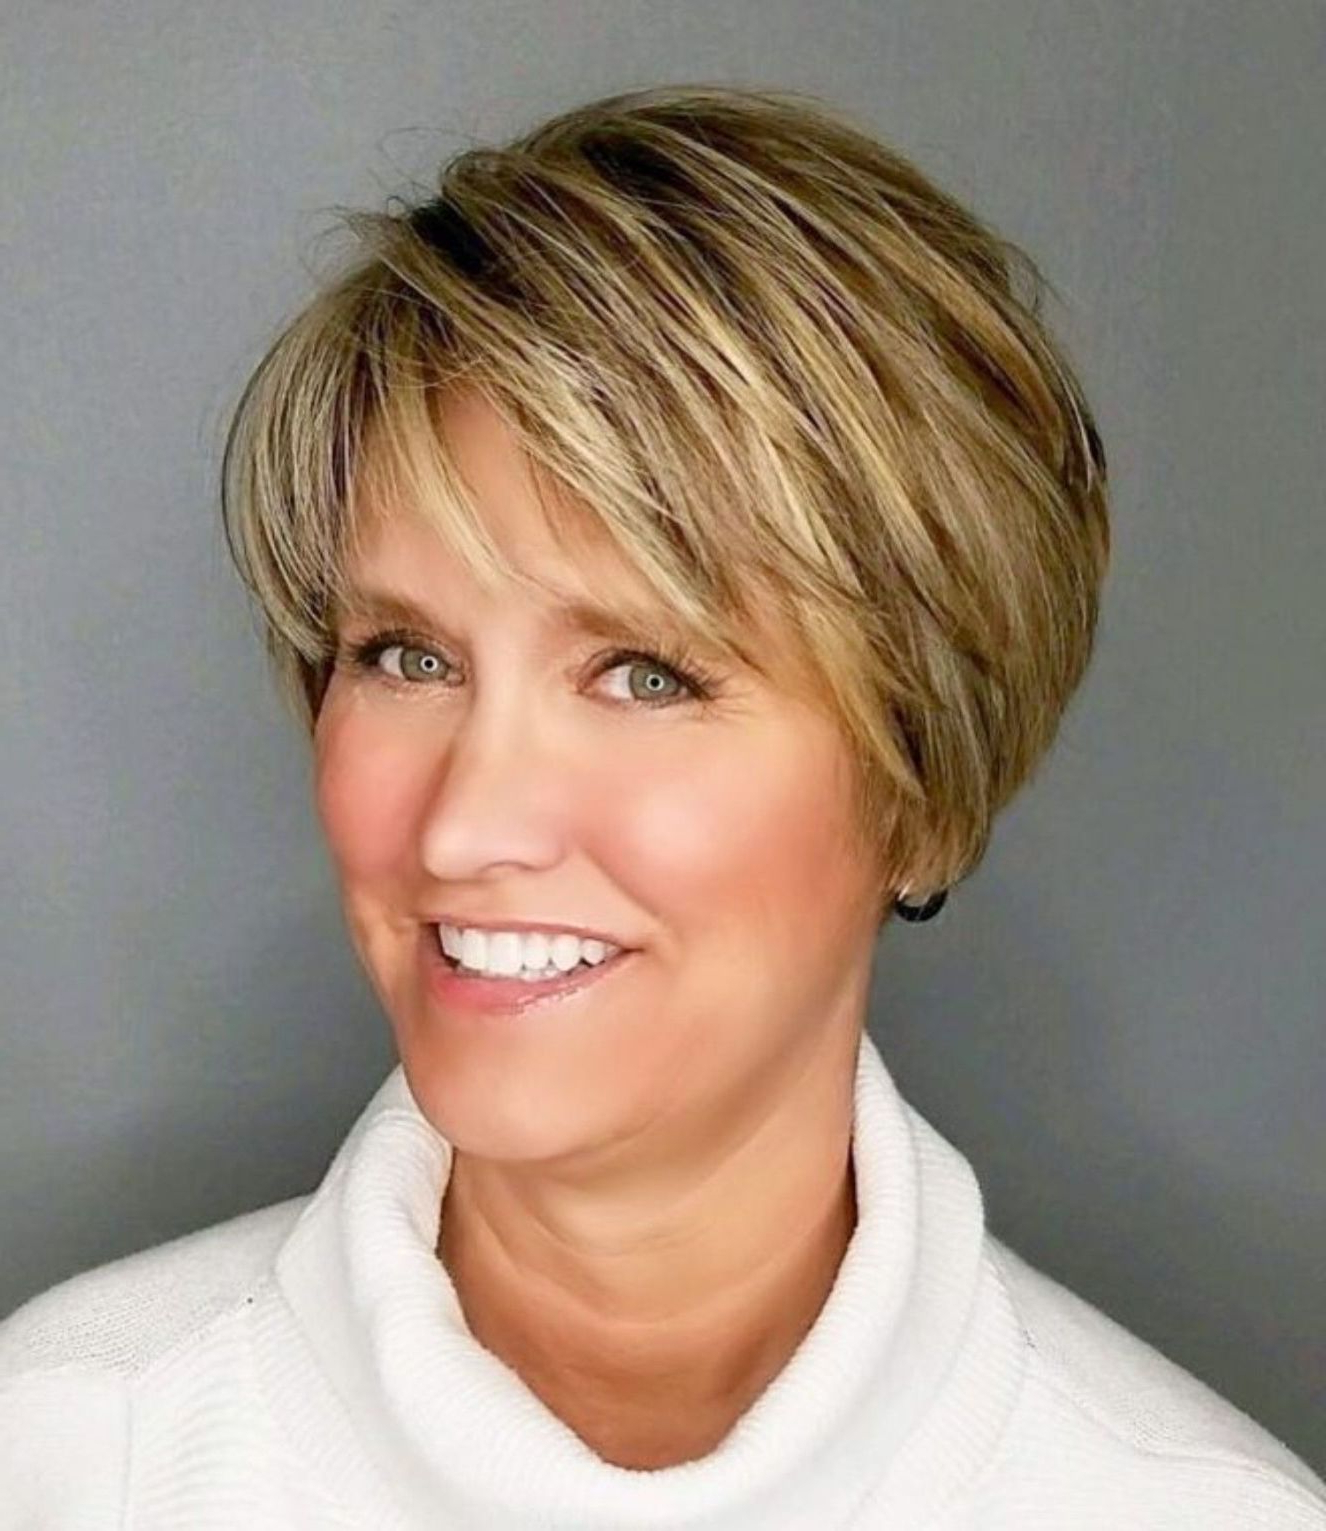 90 Classy And Simple Short Hairstyles For Women Over 50 In For Short Feathered Hairstyles (View 2 of 20)